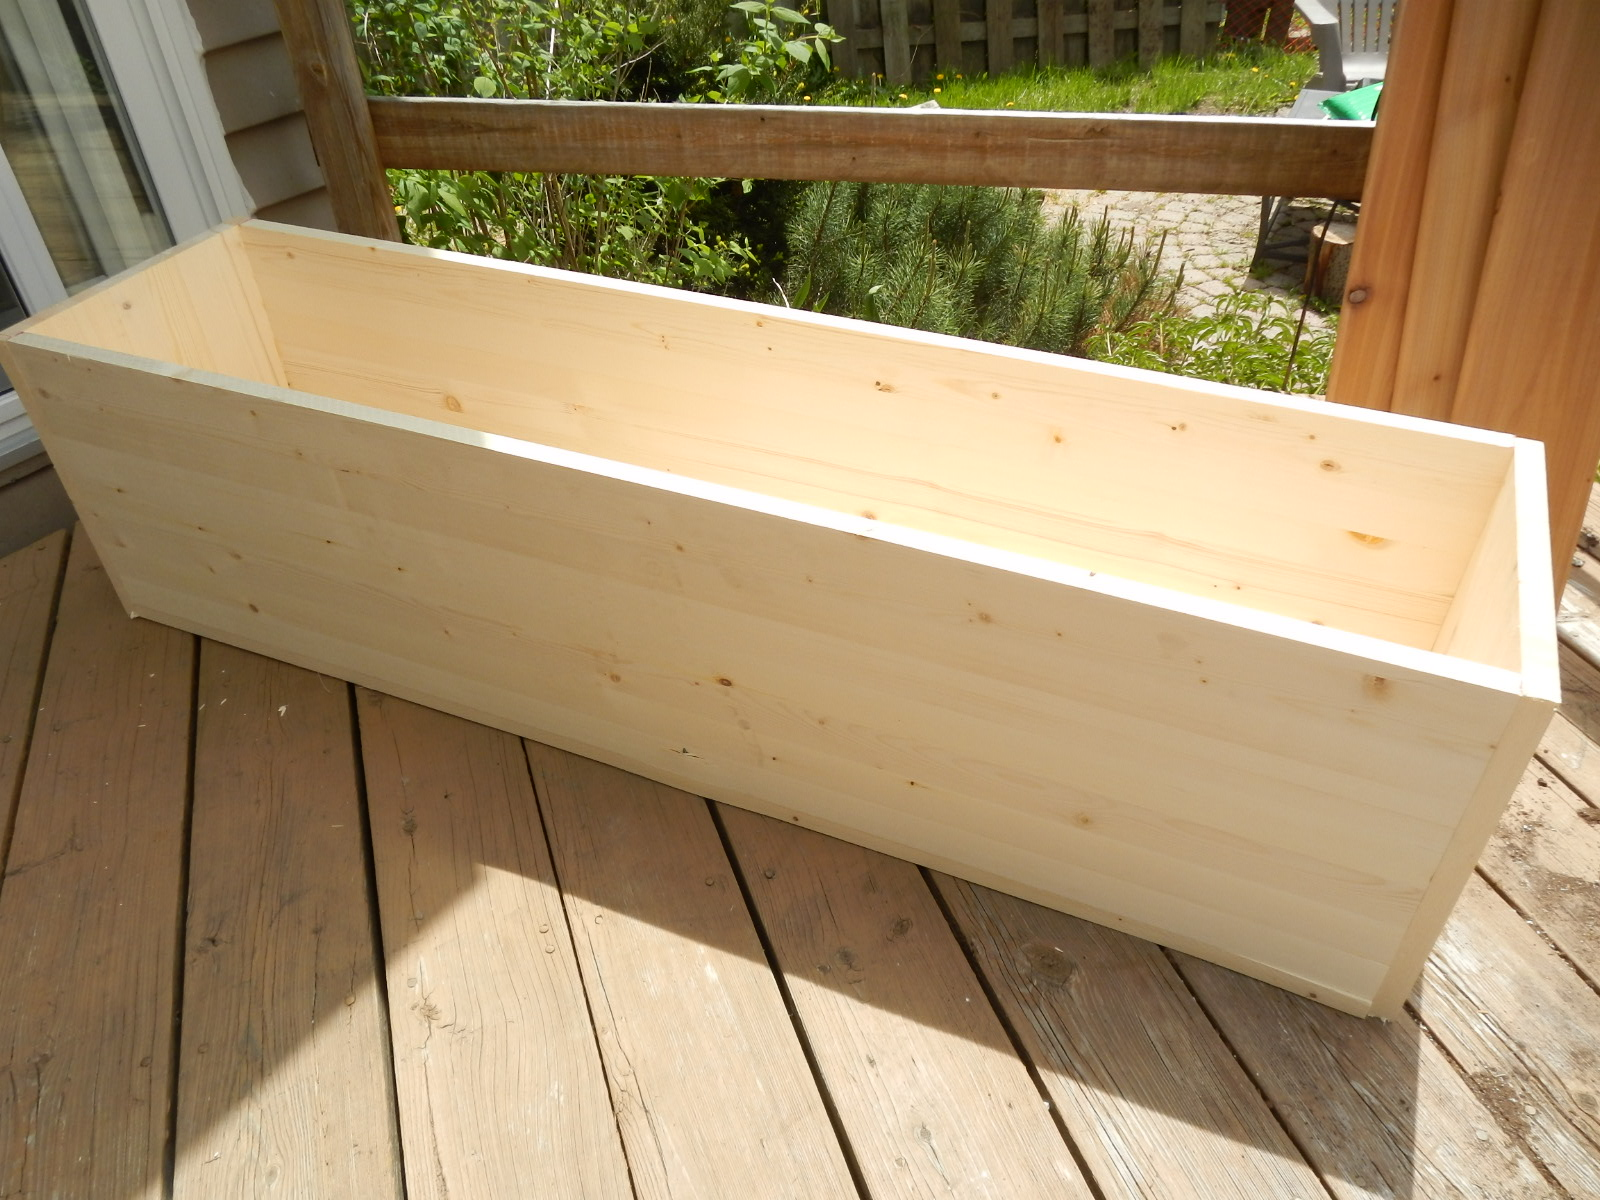 Simple Planters Planting For Privacy Diy Wood Planter Just Decorate